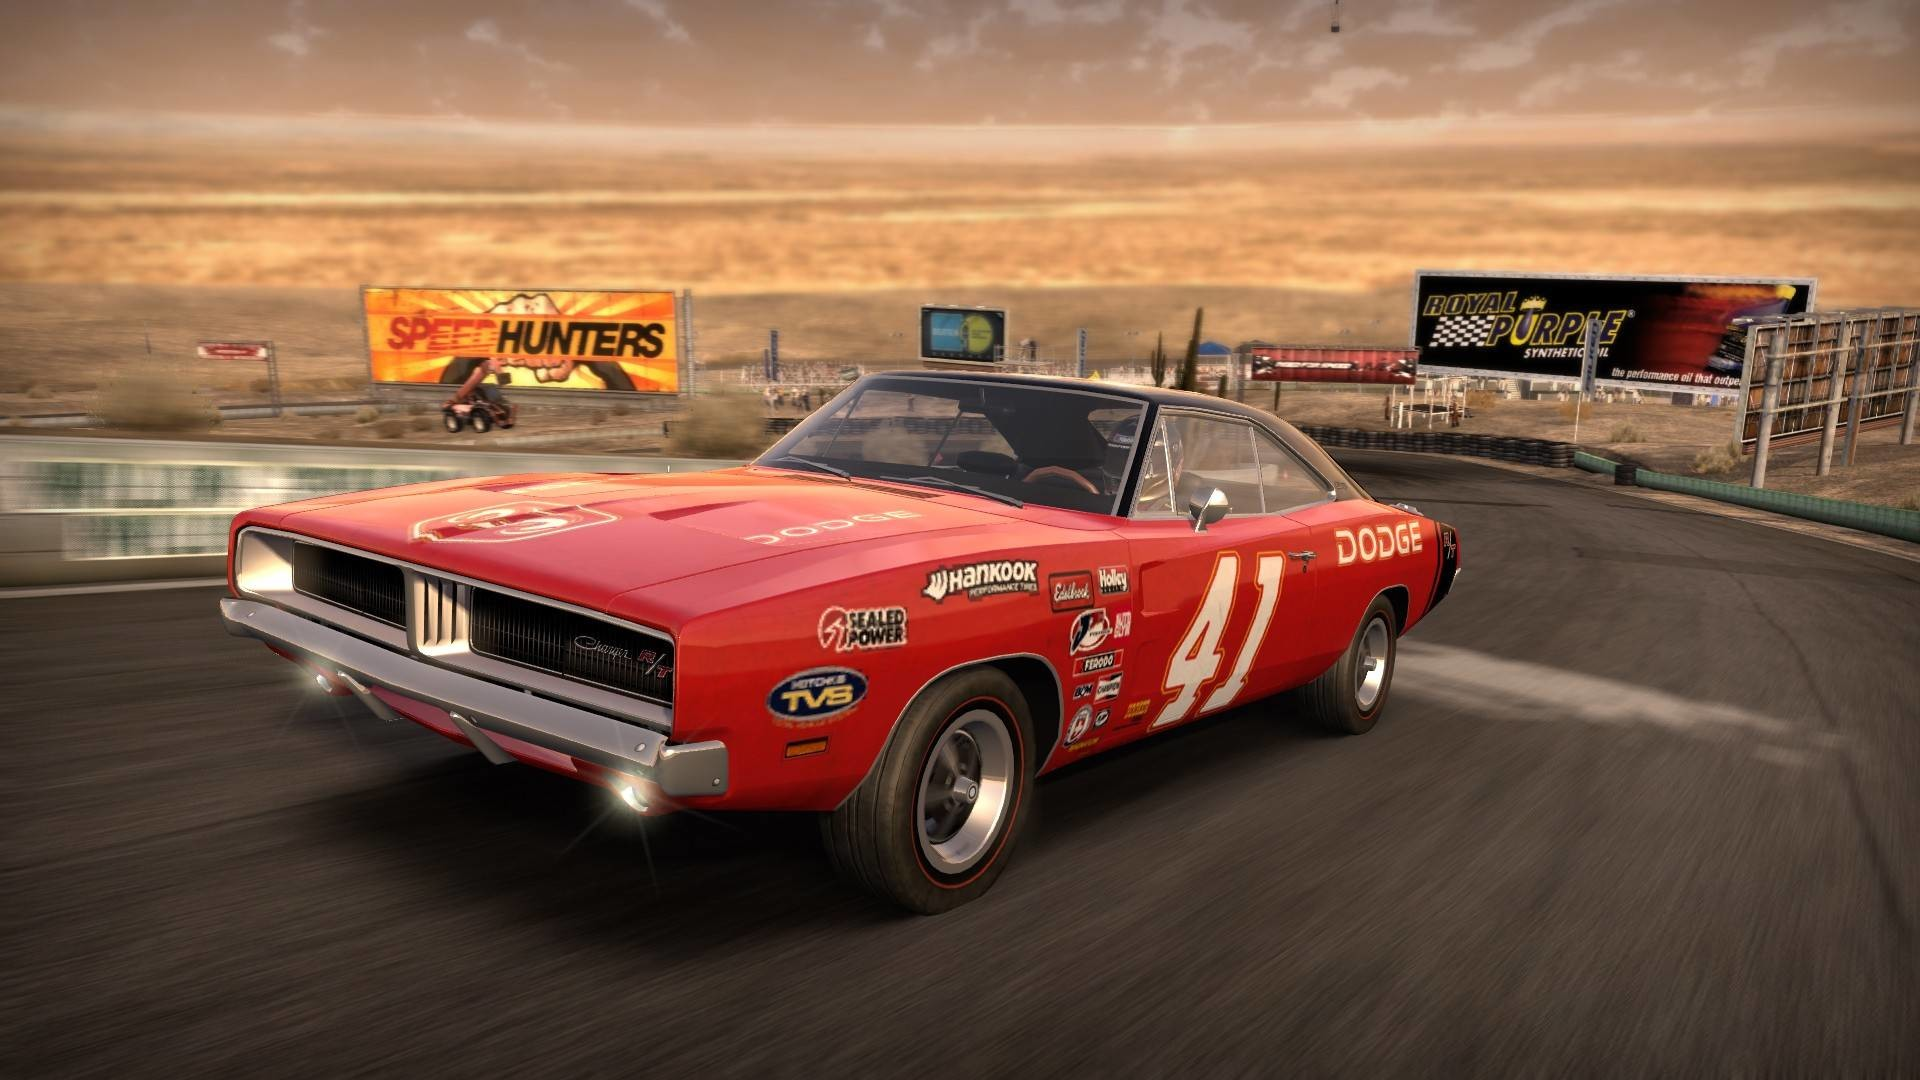 1970 Dodge Charger Wallpaper HD (76+ images)